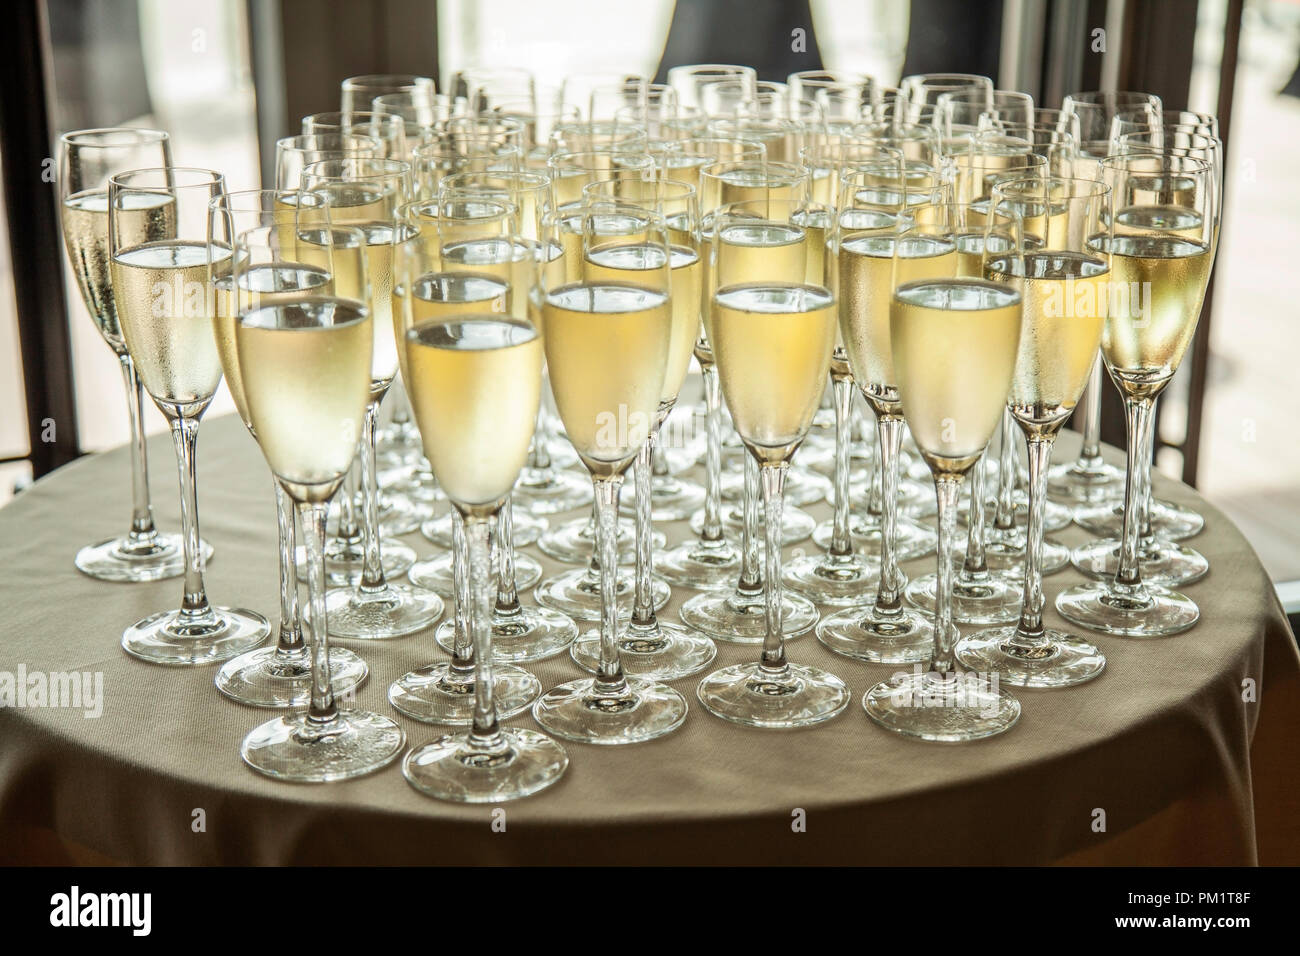 Glasses with cold champagne at the banquet - Stock Image